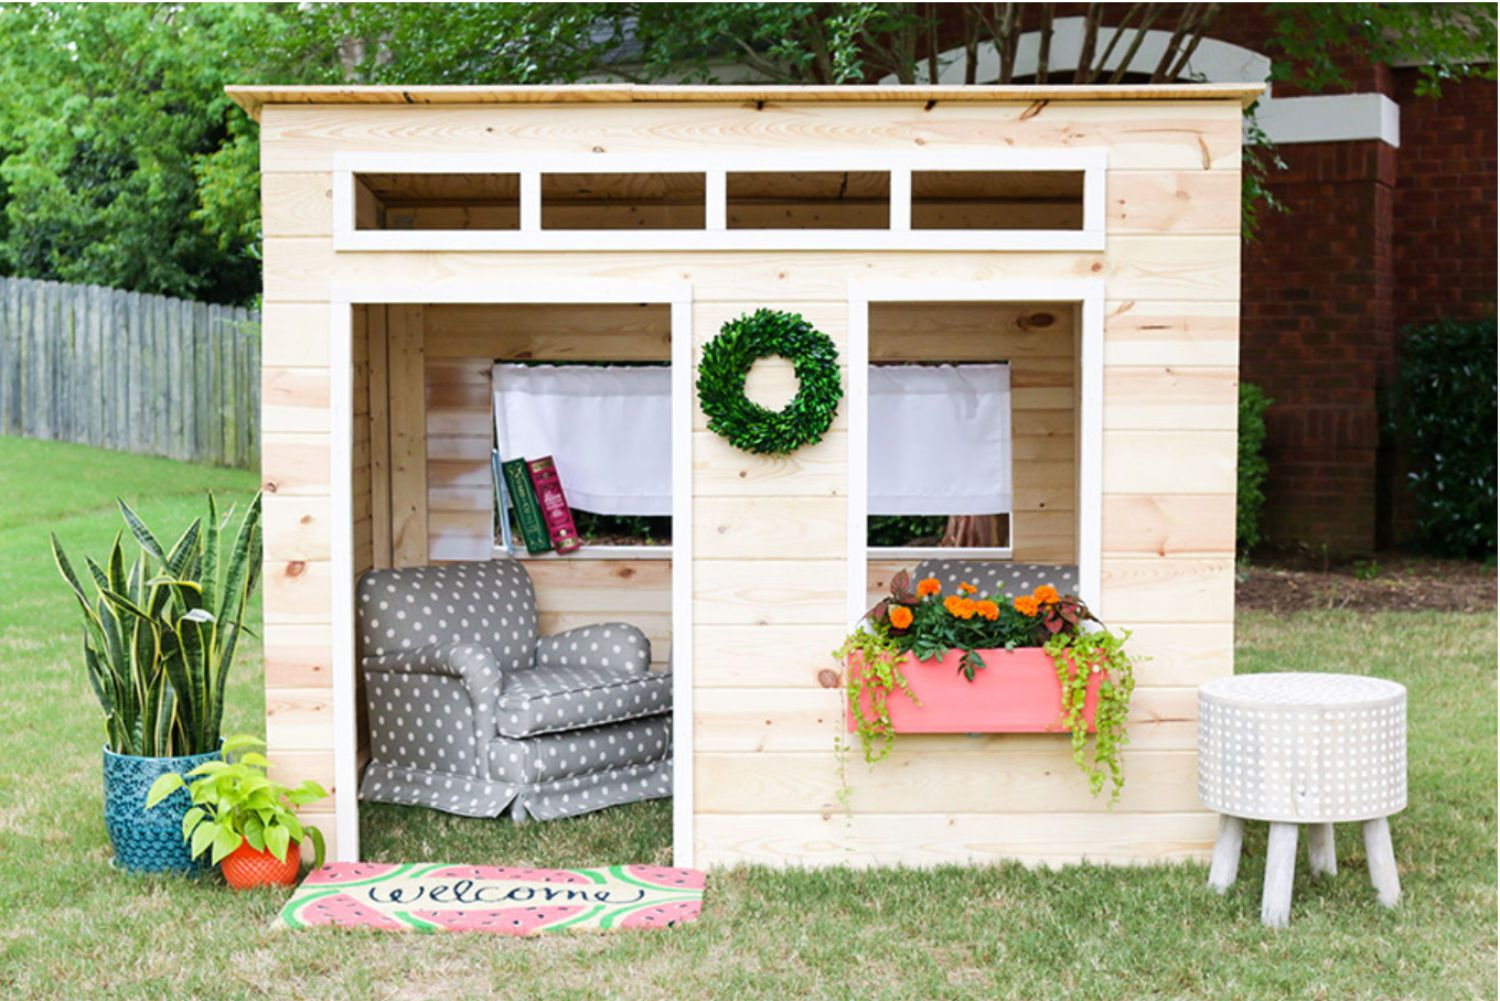 16 Free Backyard Playhouse Plans For Kids with 11 Awesome Ideas How to Craft Backyard Playhouse Ideas